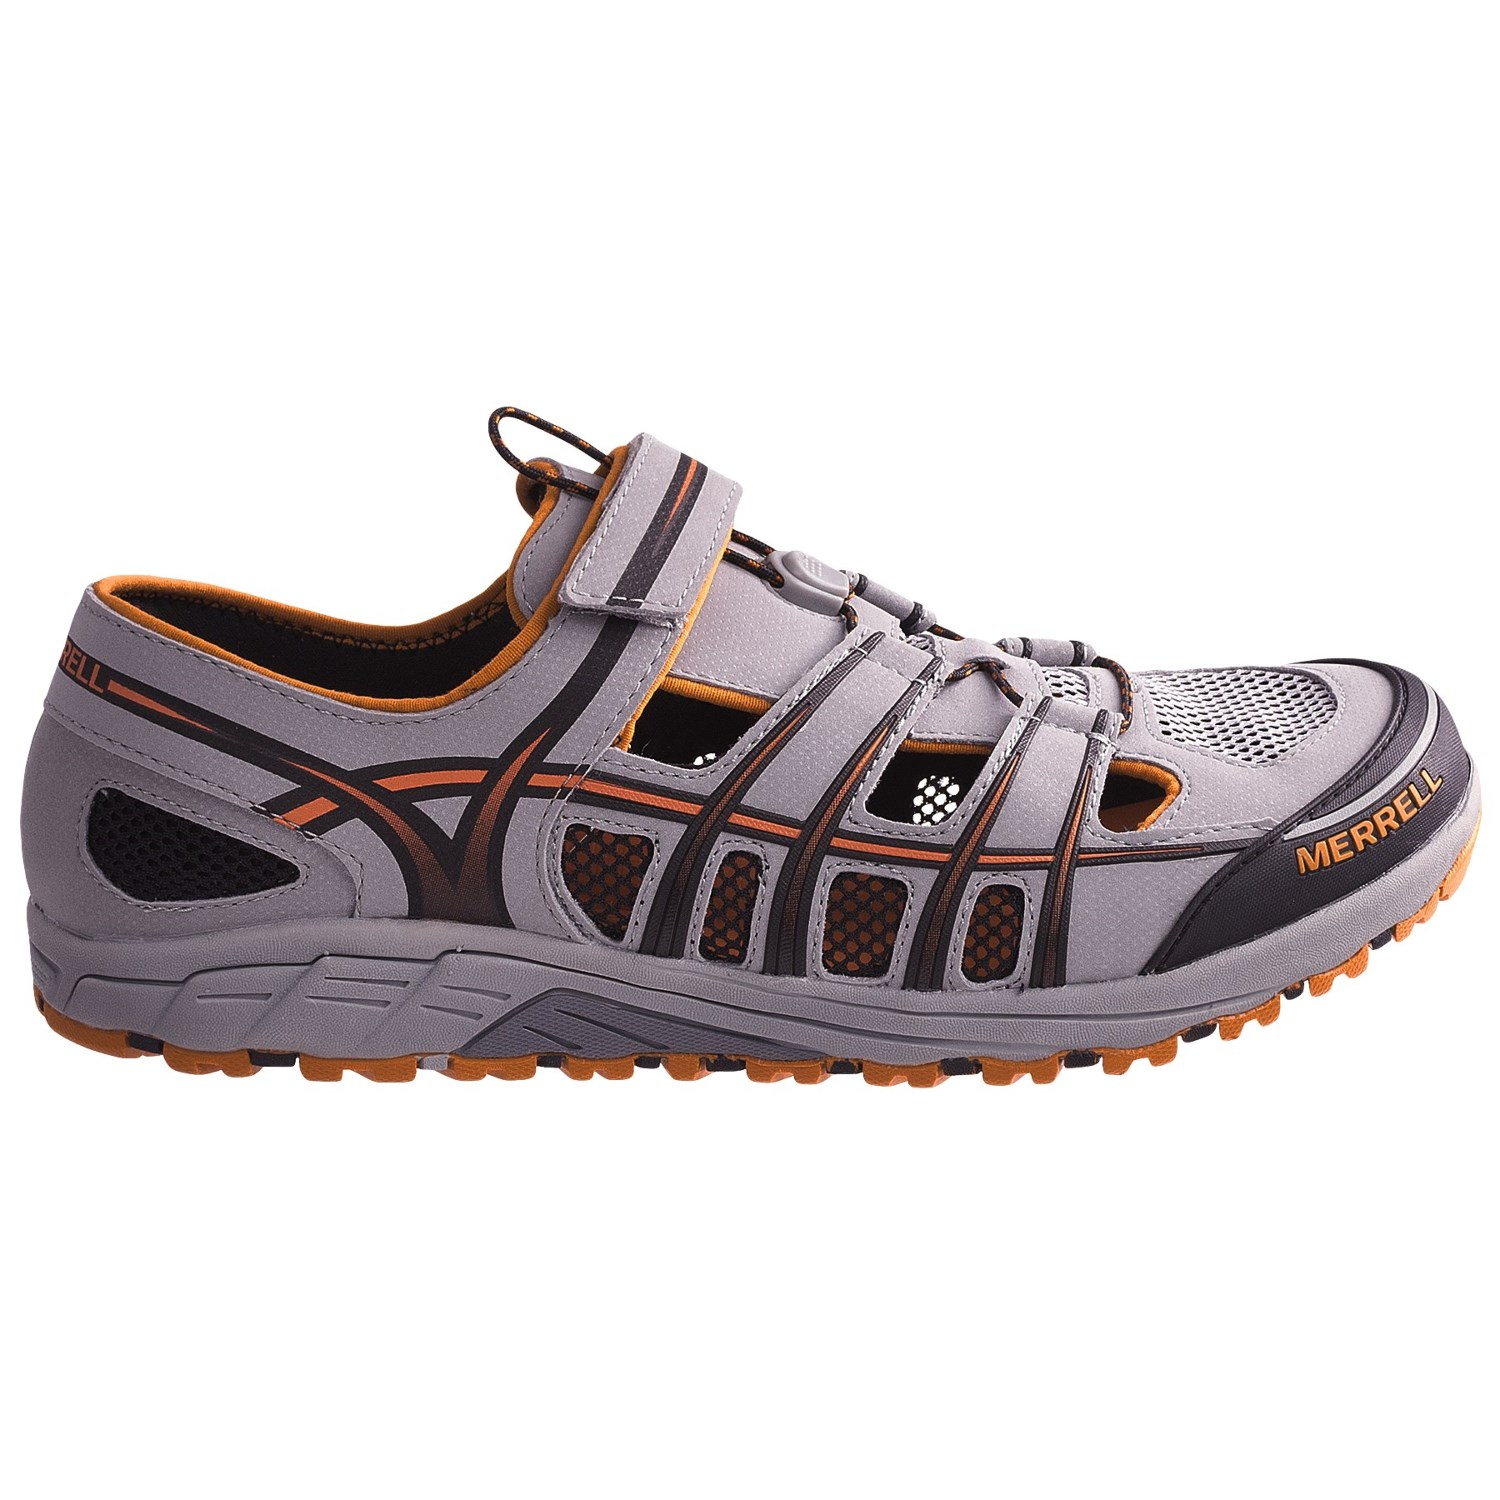 merrell mix master maze sport water shoes for 6580r